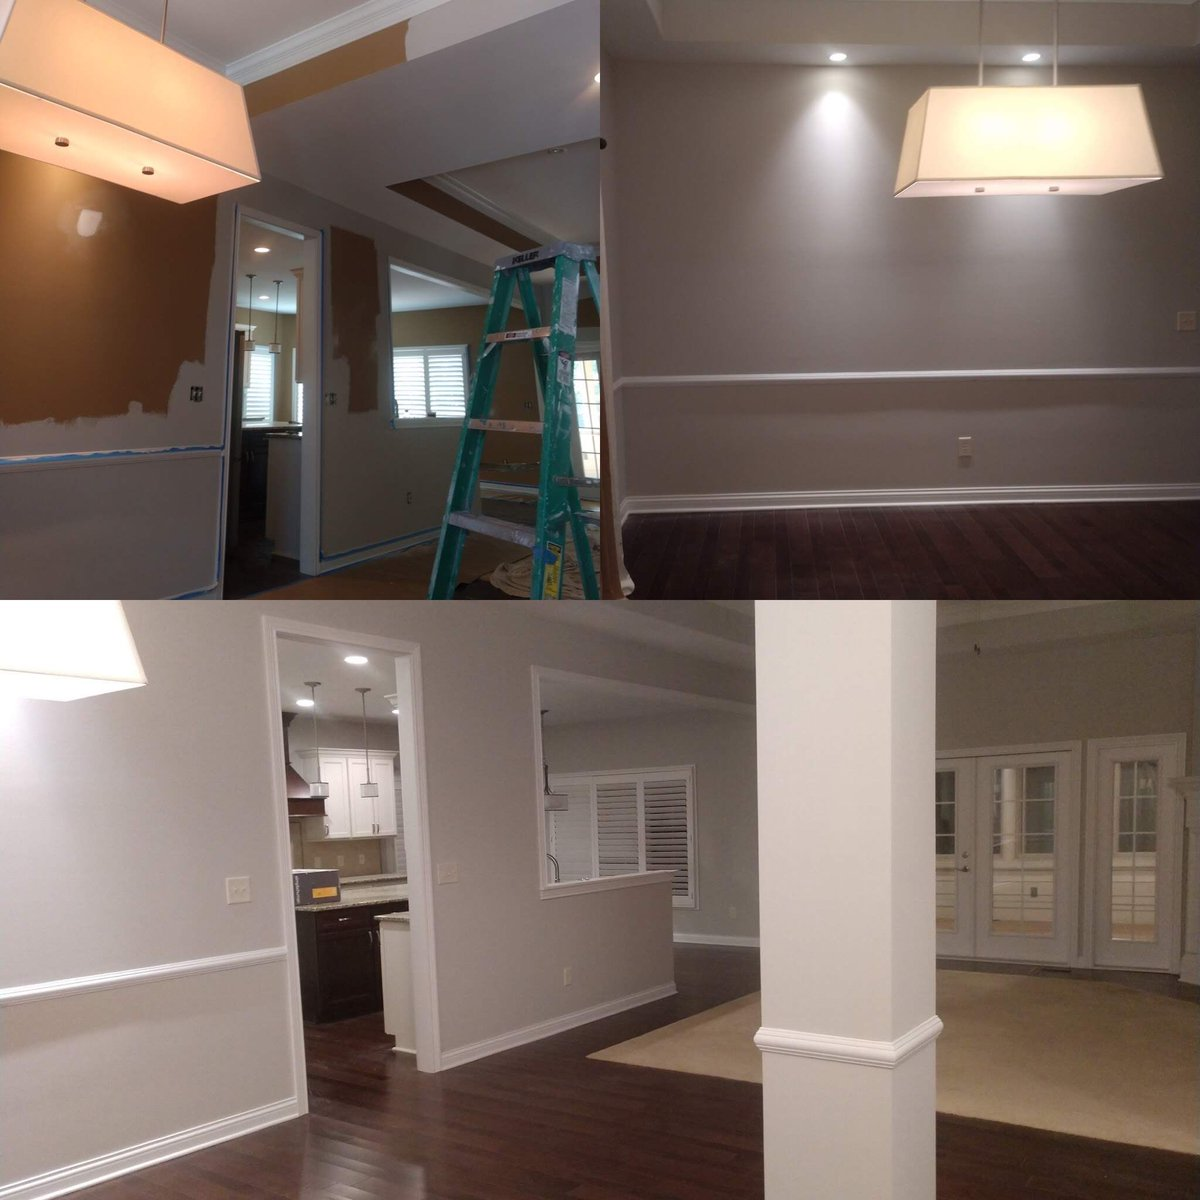 This interior in Fishers look great with some new paint!   #interior #paint #fishers #ourtown #SWReposeGray